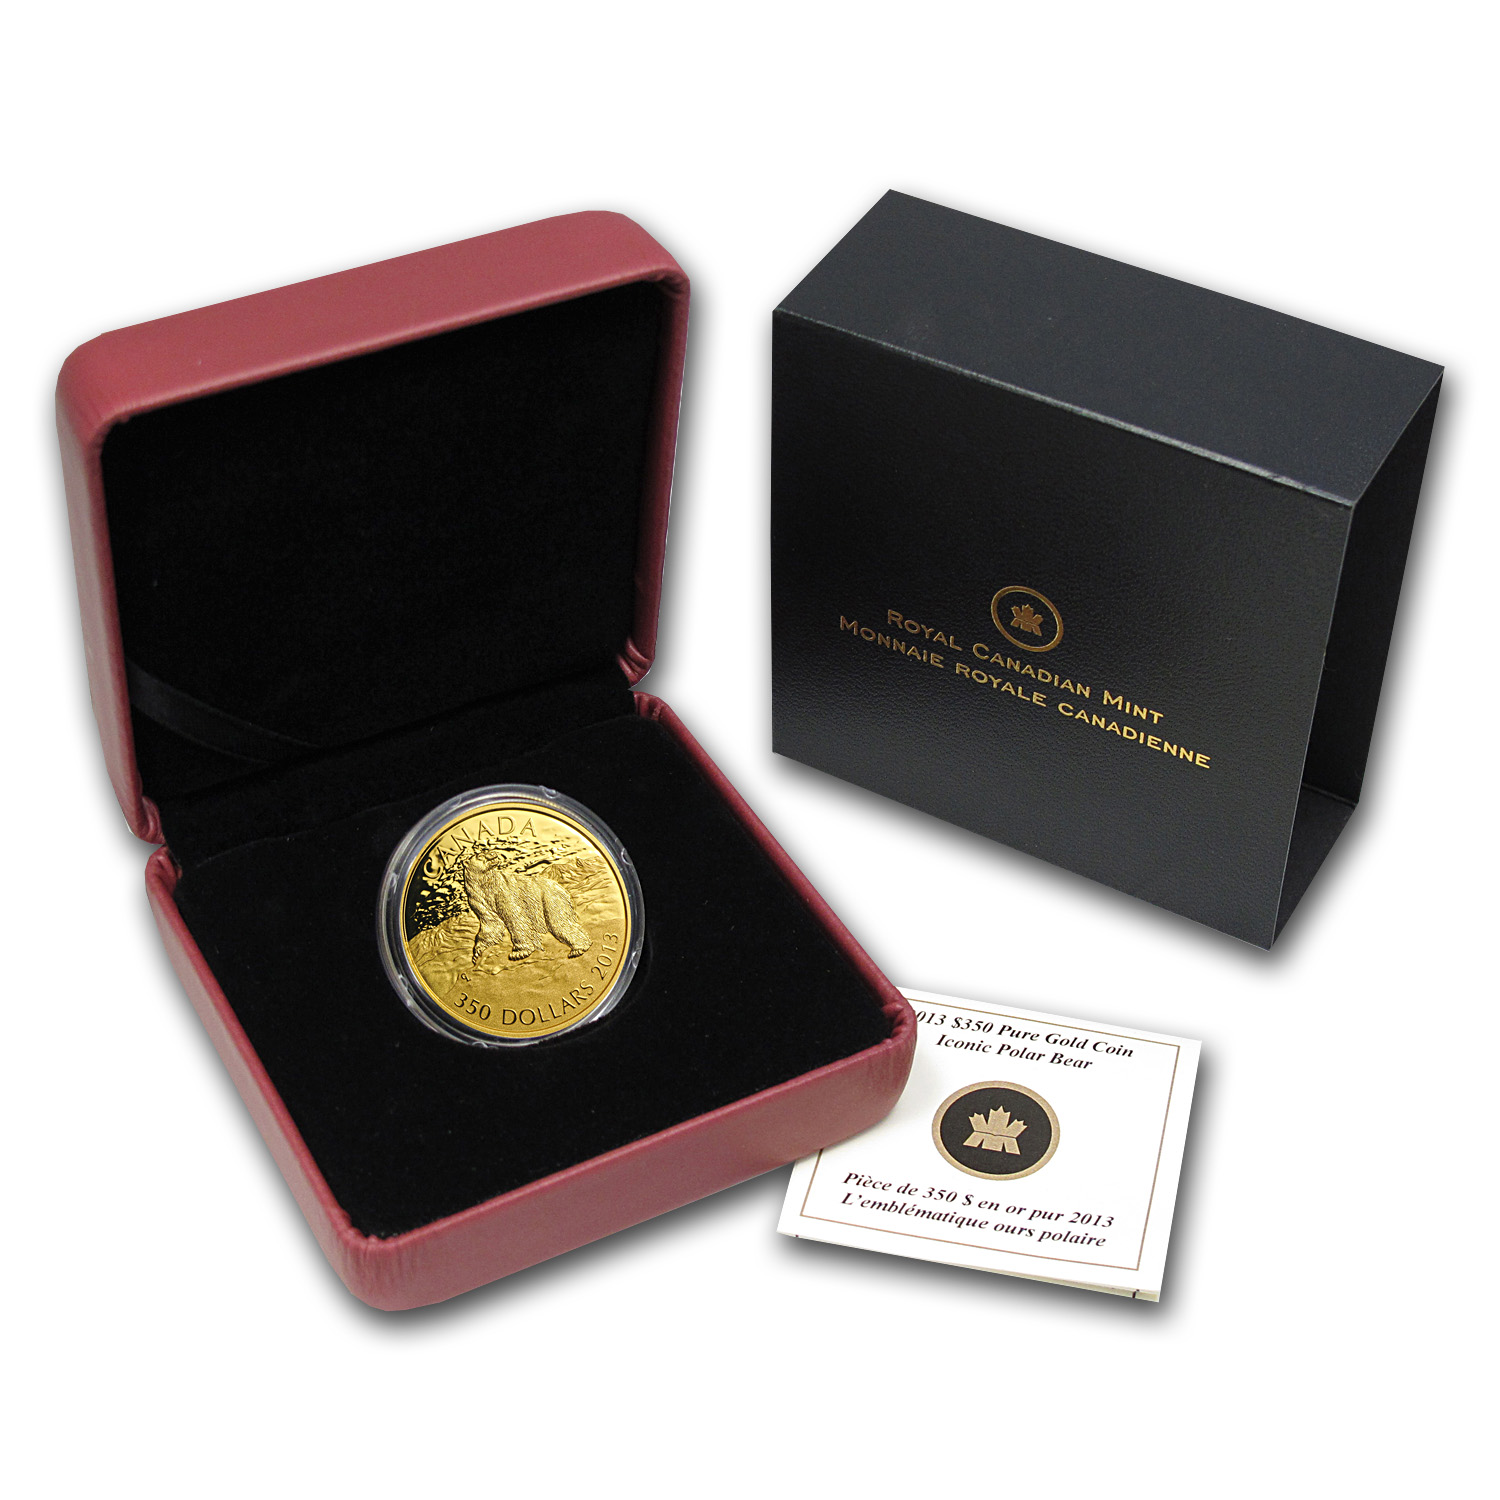 2013 Canada Proof Gold $350 Iconic Polar Bear